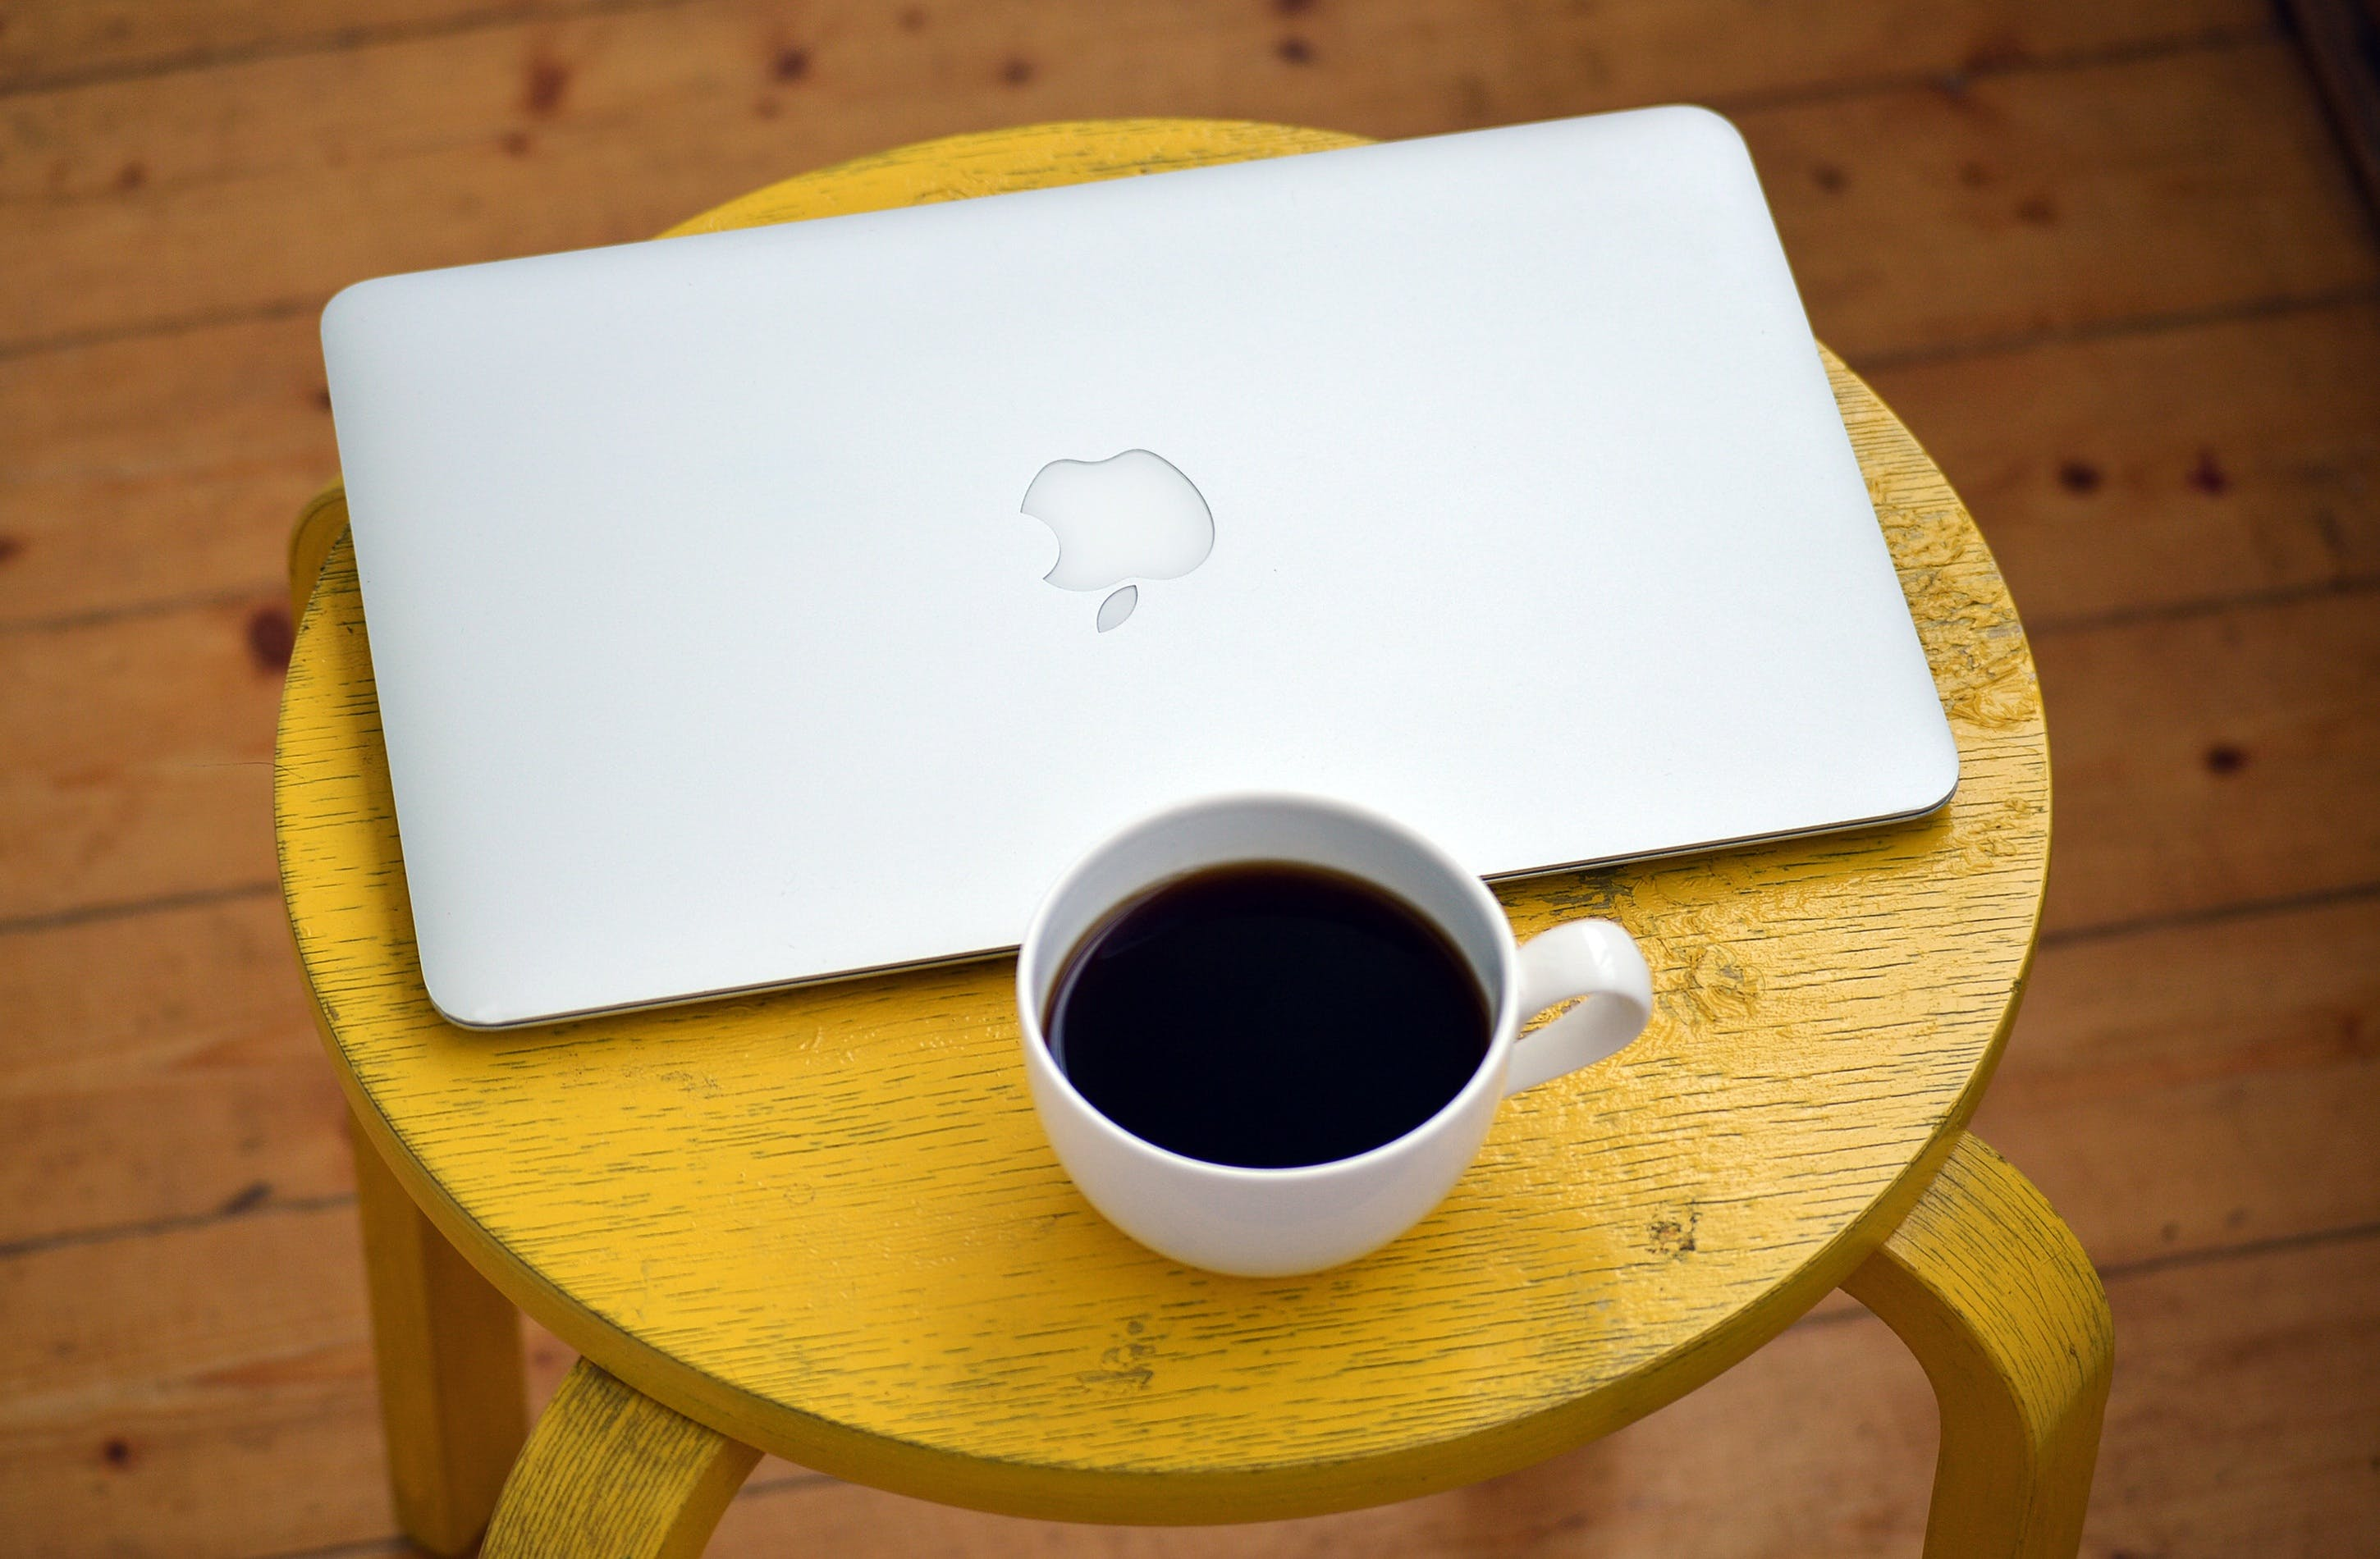 Silver Macbook Beside White Cup